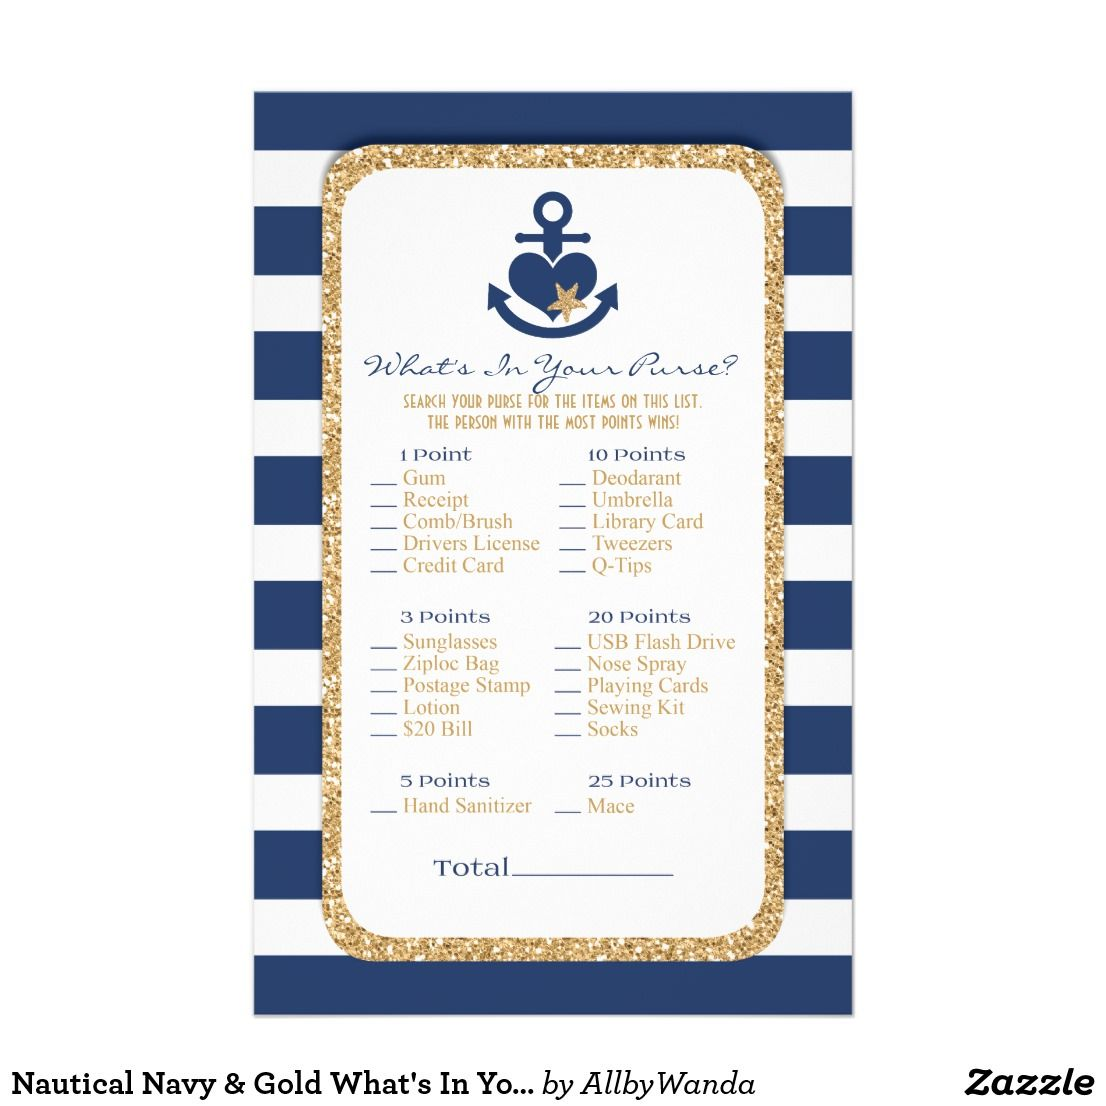 Nautical Navy Gold What S In Your Purse Flyer Zazzle Com Nautical Bridal Showers Whats In Your Purse Navy Gold